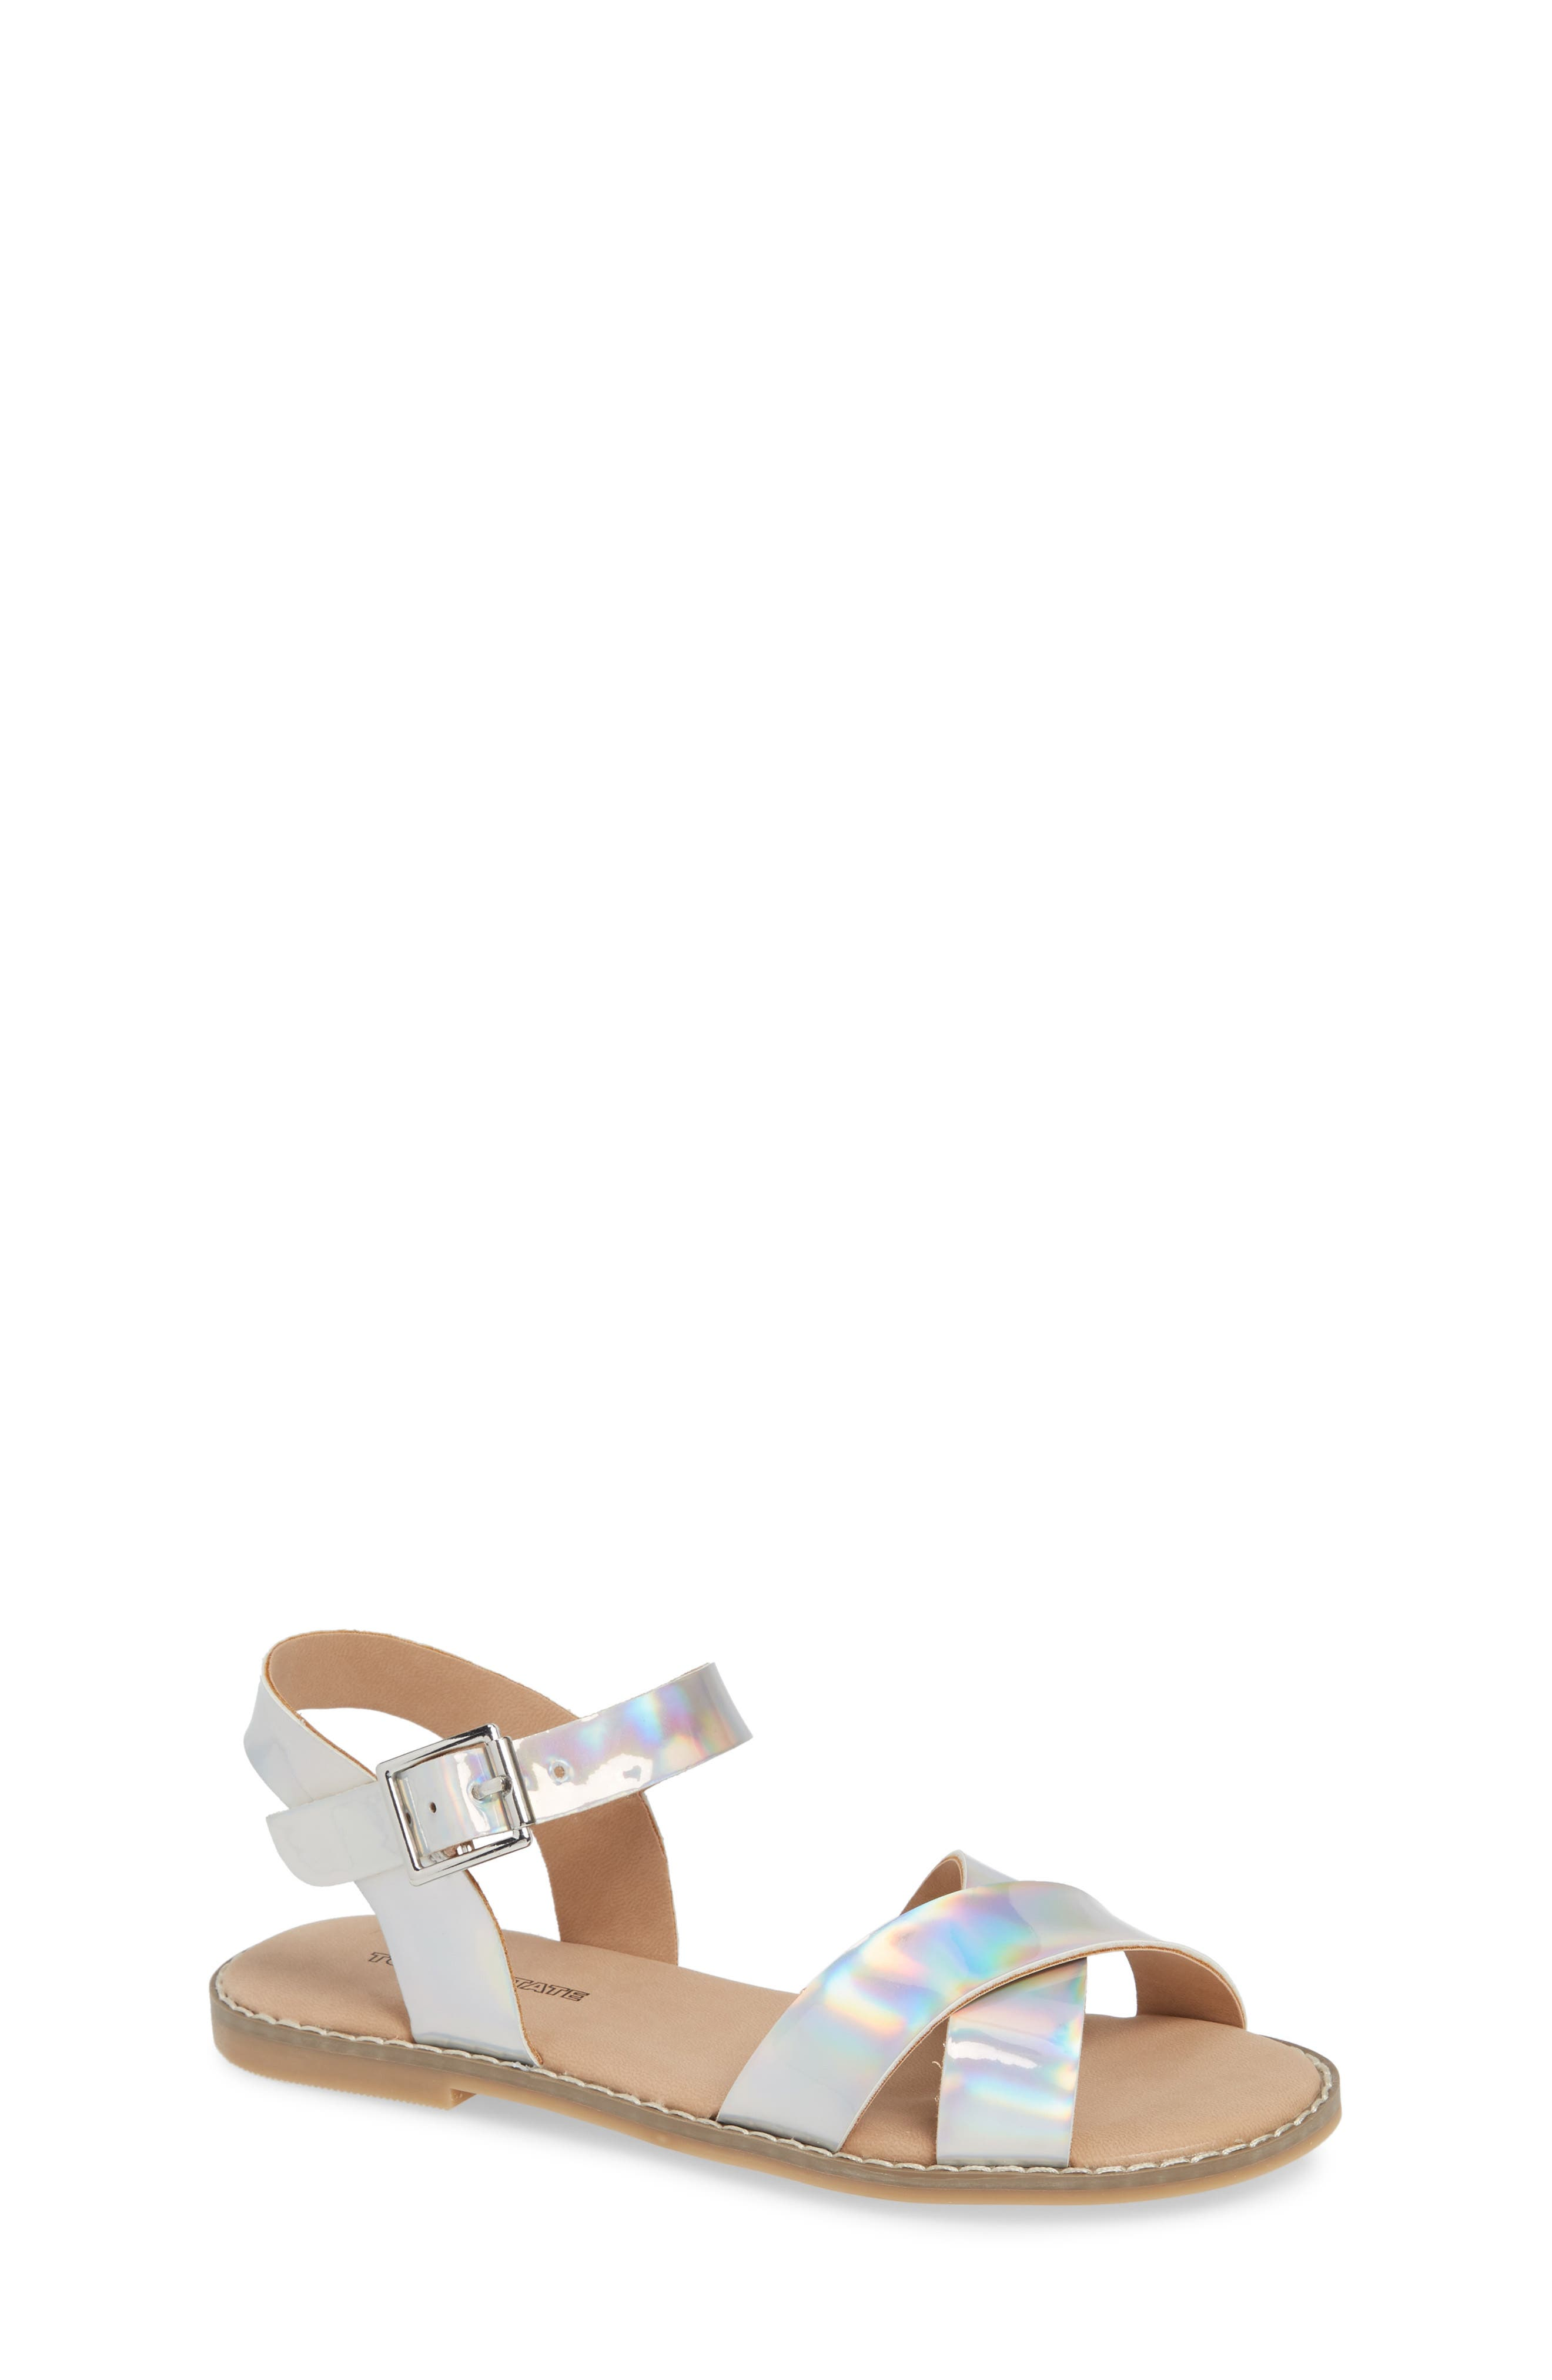 Arya Cross Strap Sandal,                         Main,                         color, SILVER HOLOGRAM FAUX LEATHER